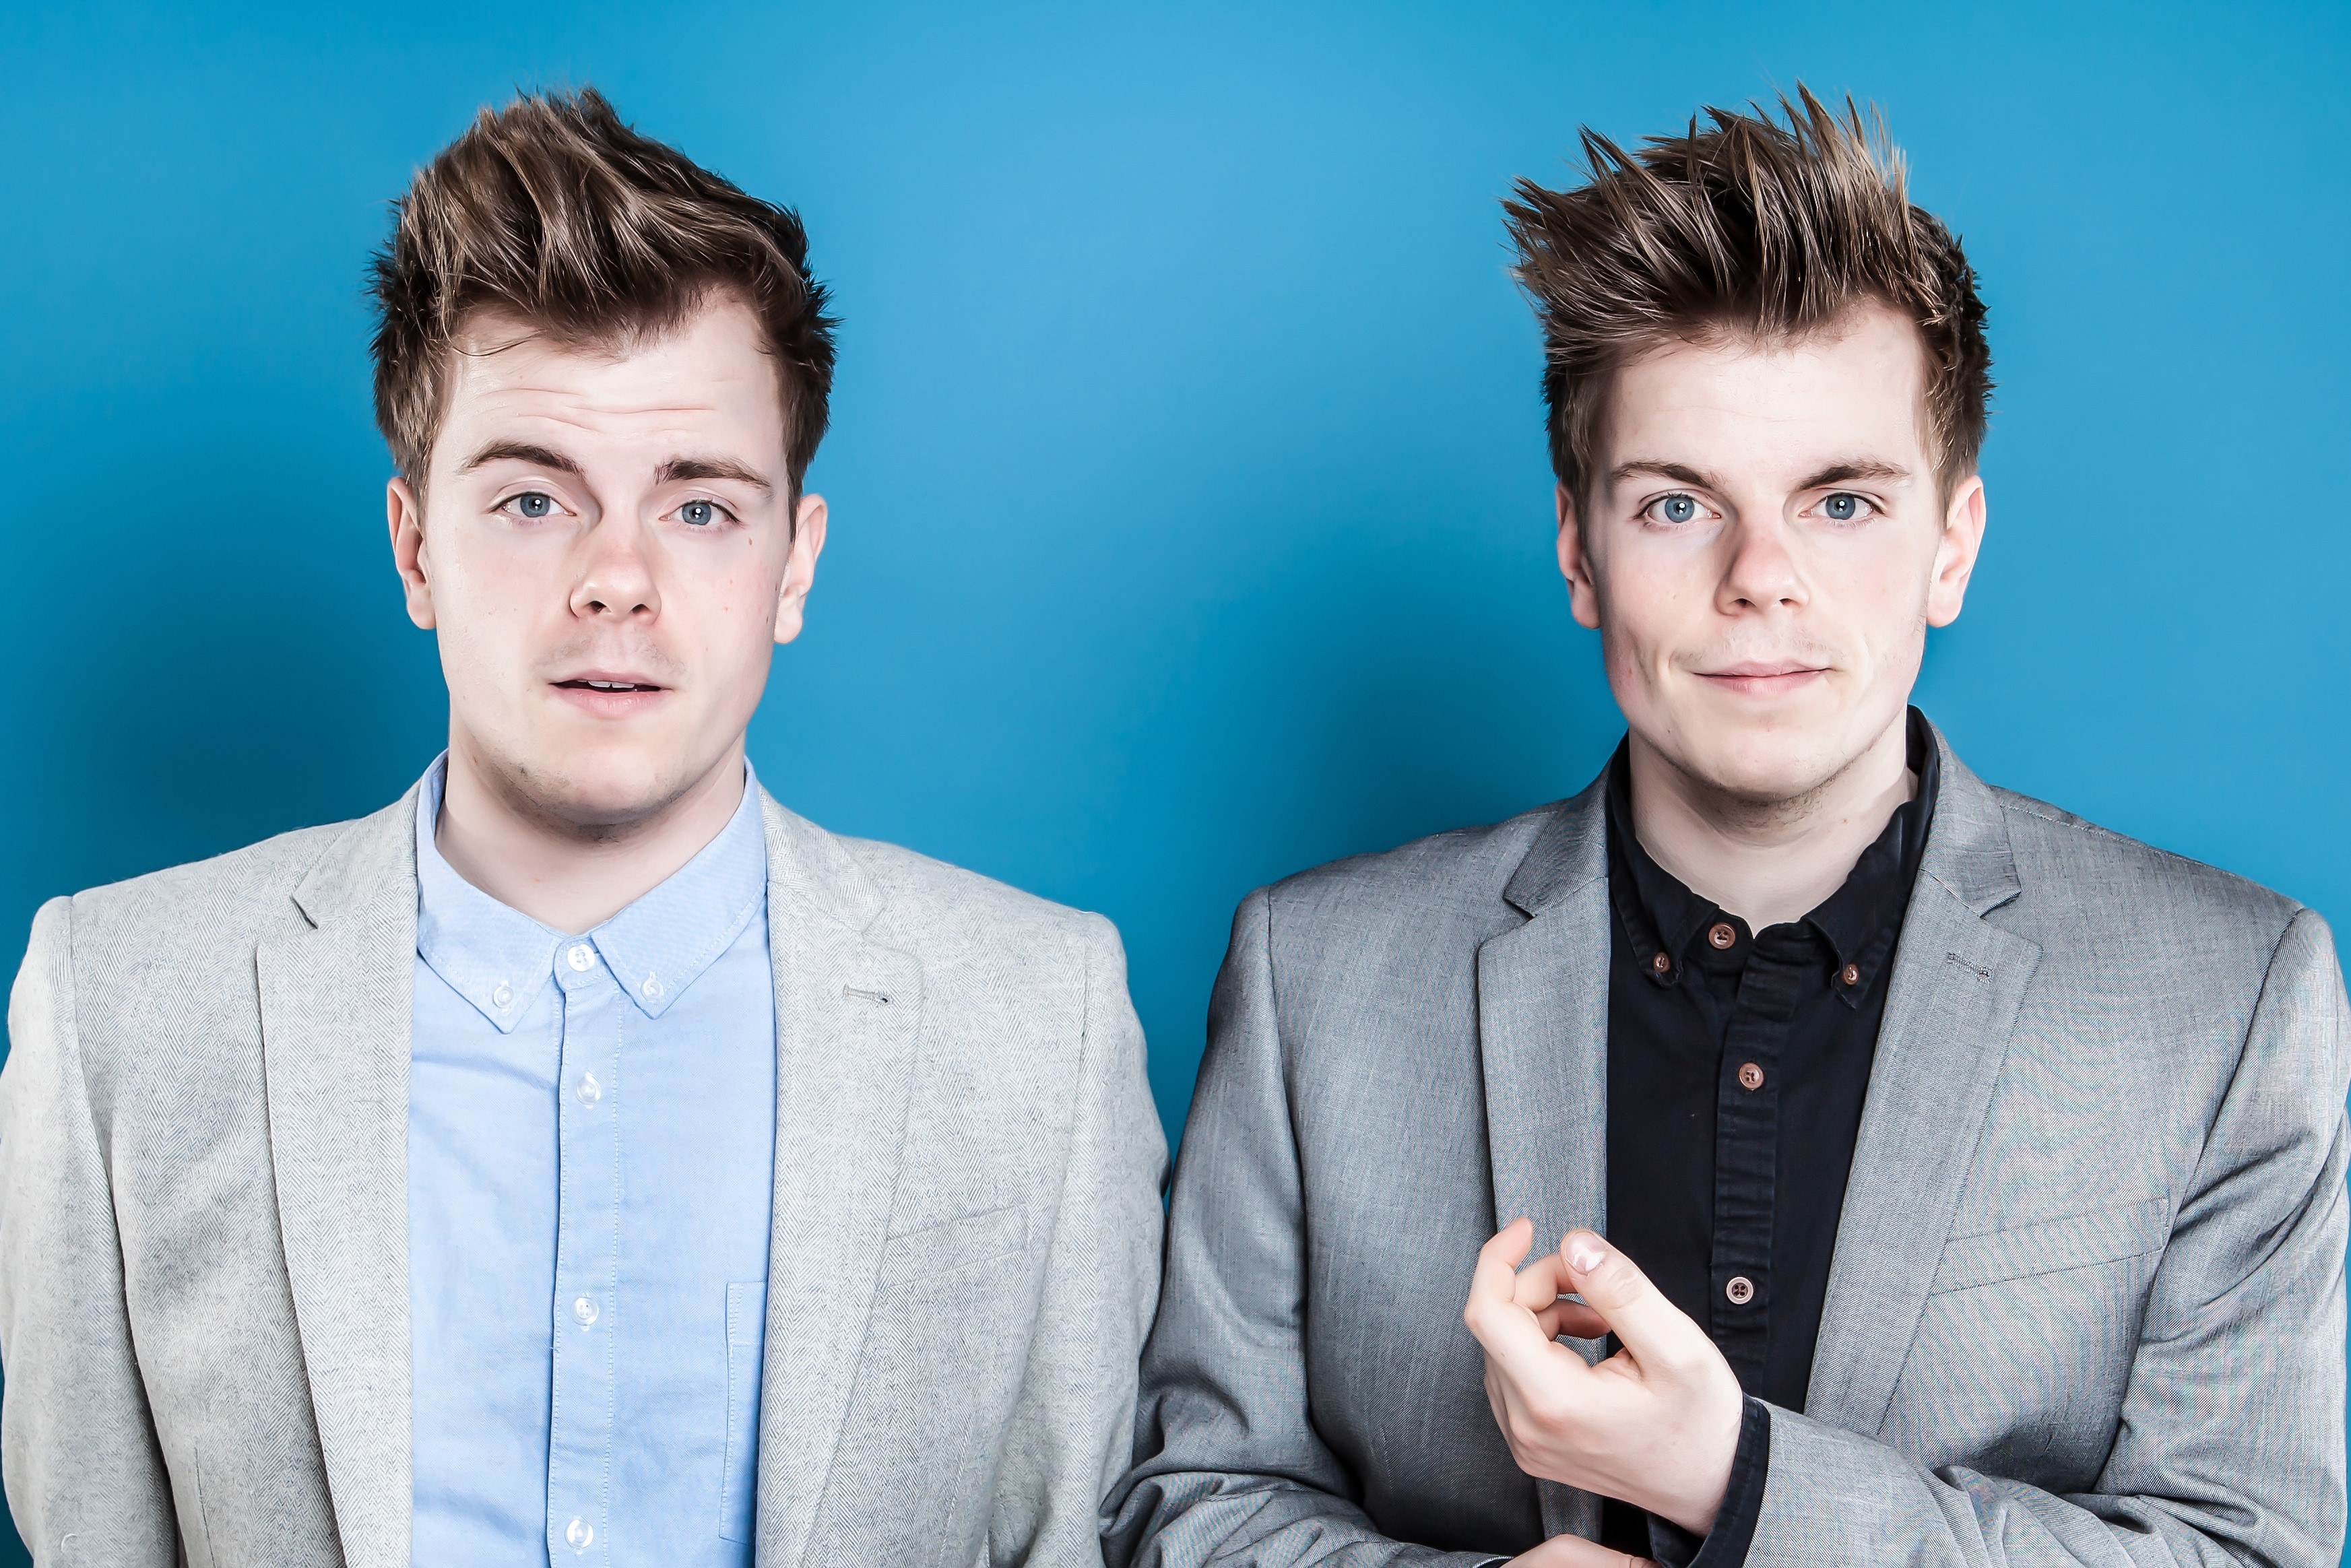 Niki & Sammy are known on YouTube for their punchy and self-depreciating humour, are everyone's favourite British twins